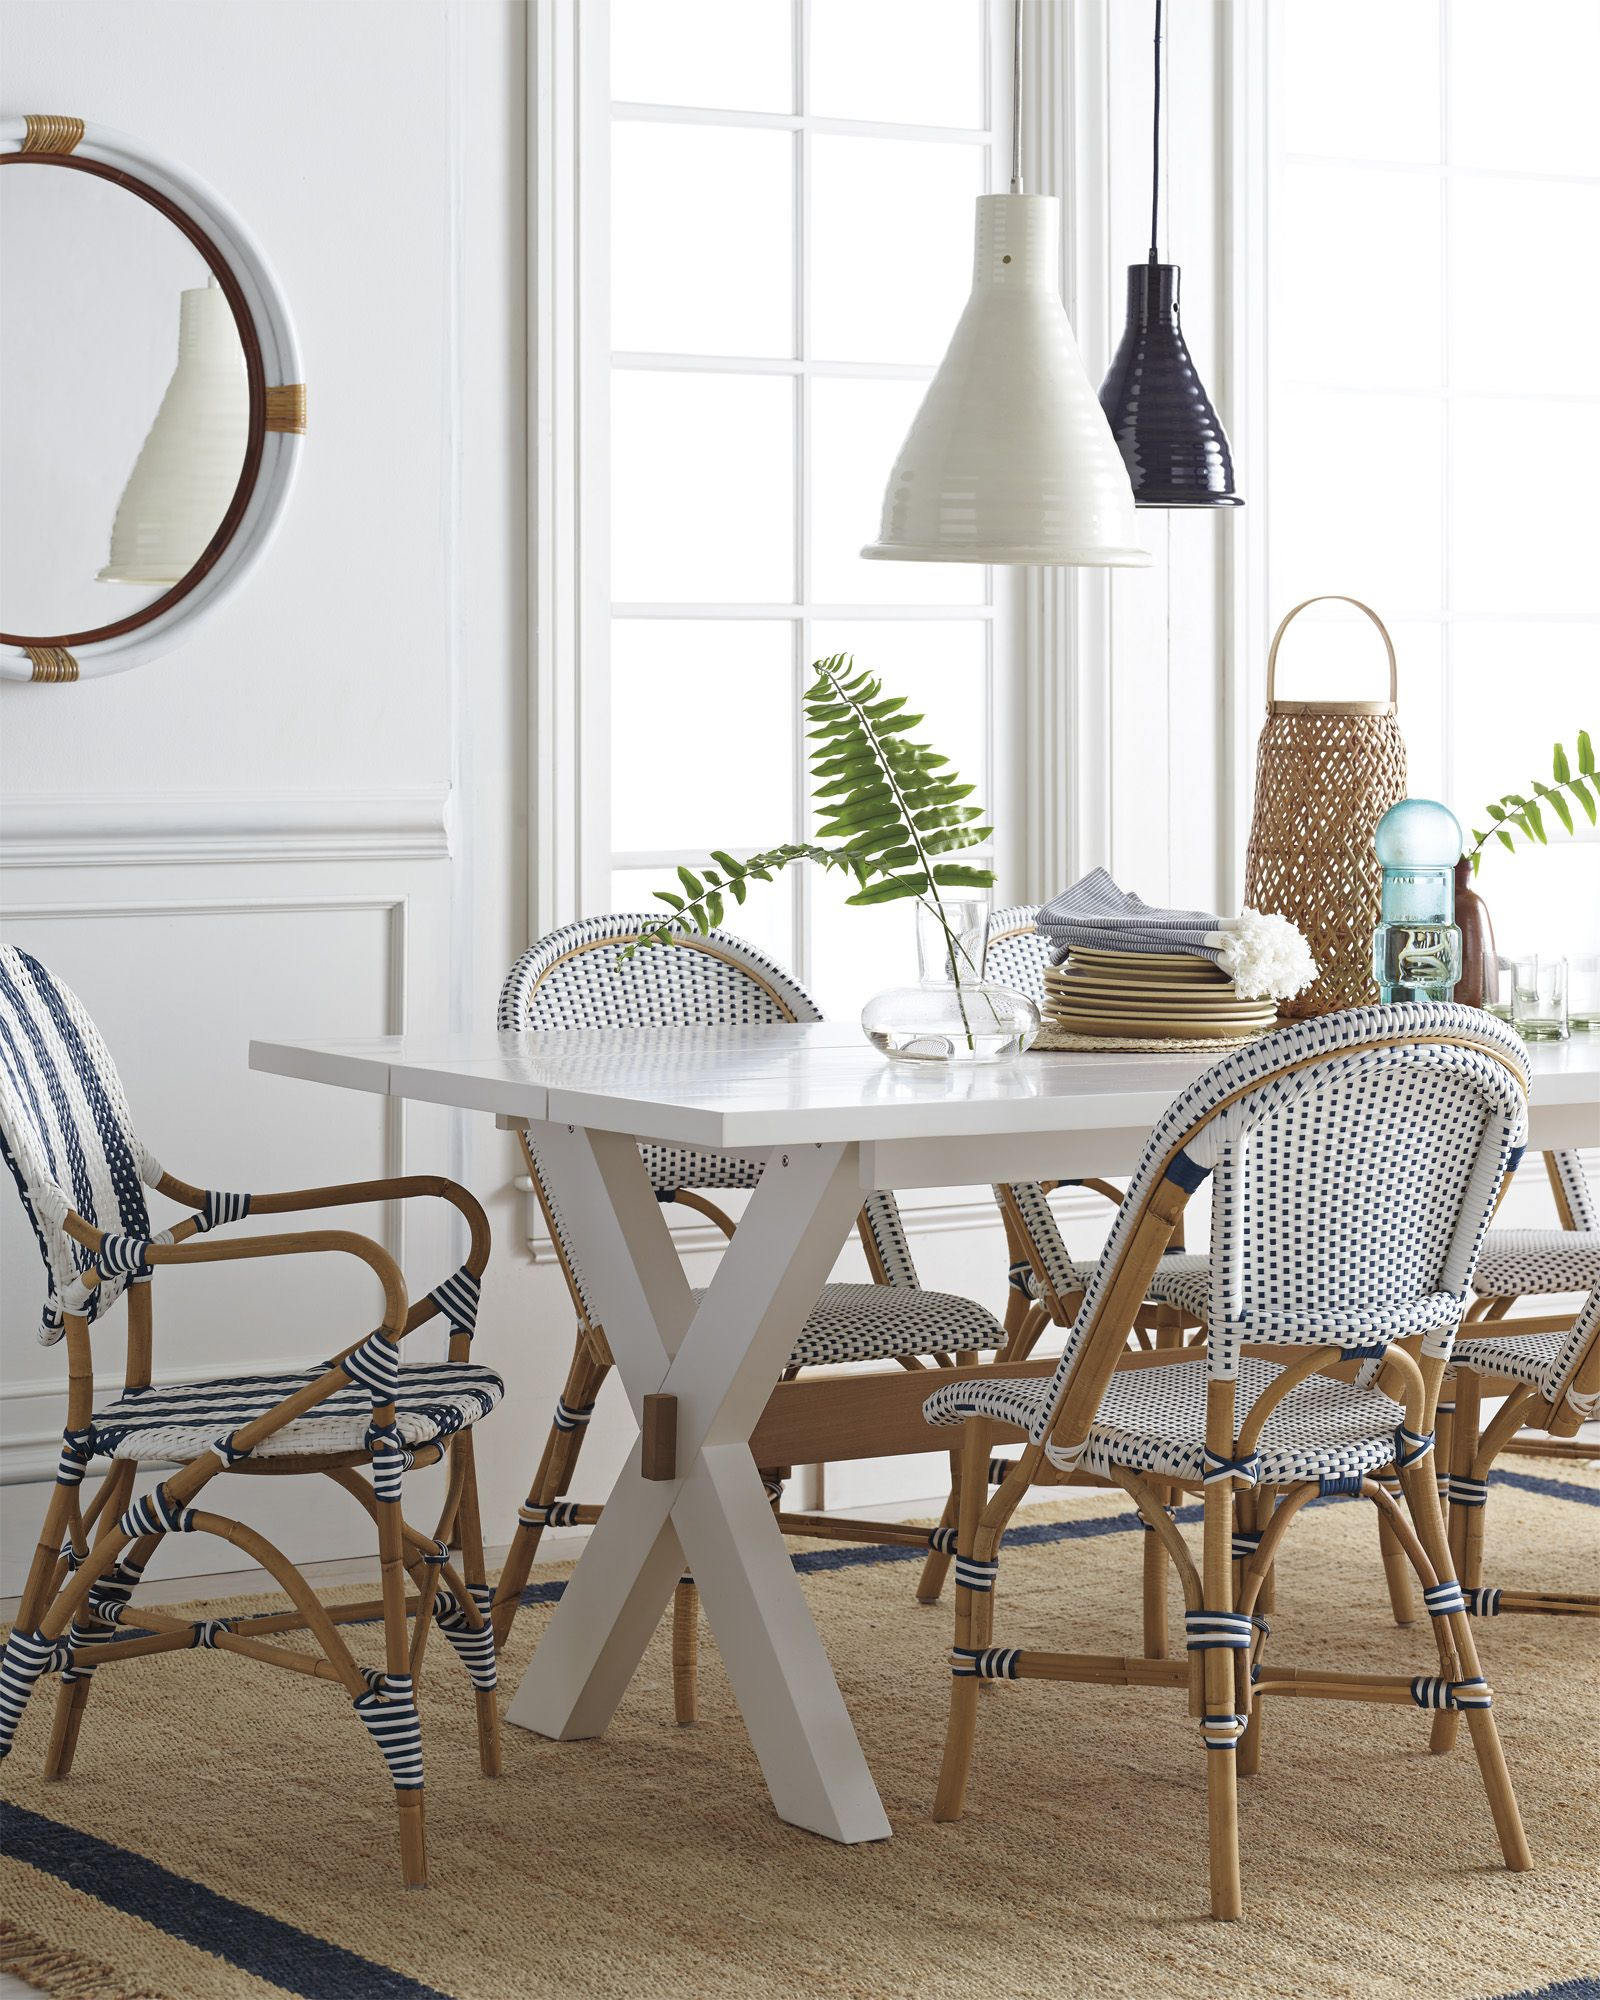 Everly Ceramic Pendant LAH11901 French bistro chairs